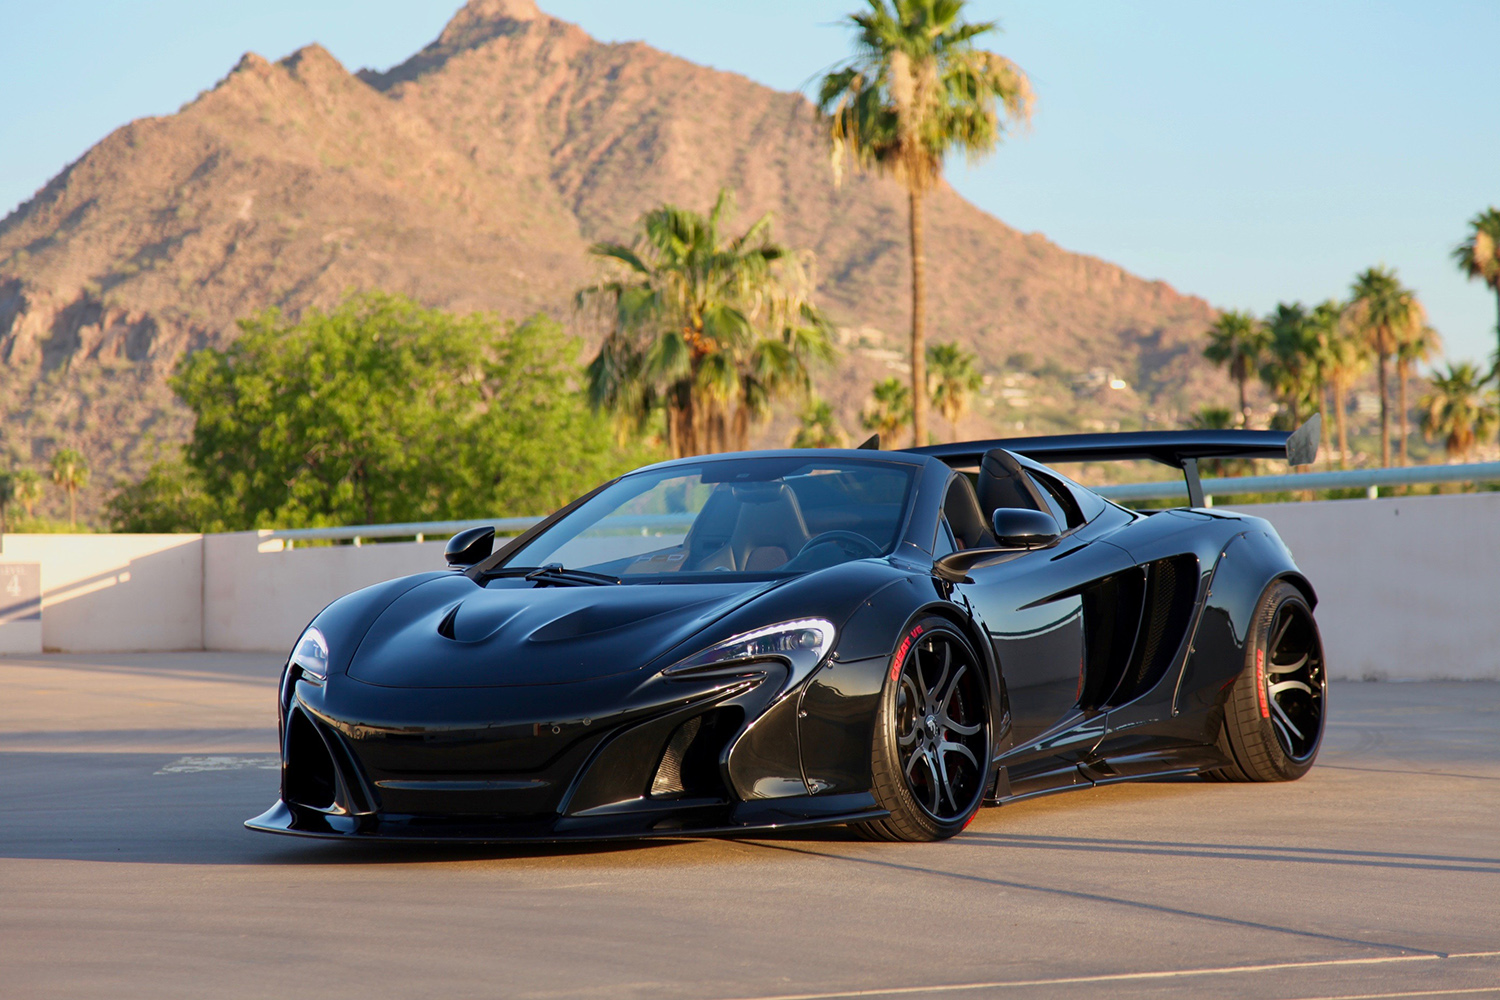 forgiato-mclaren-650s-liberty-walk-2